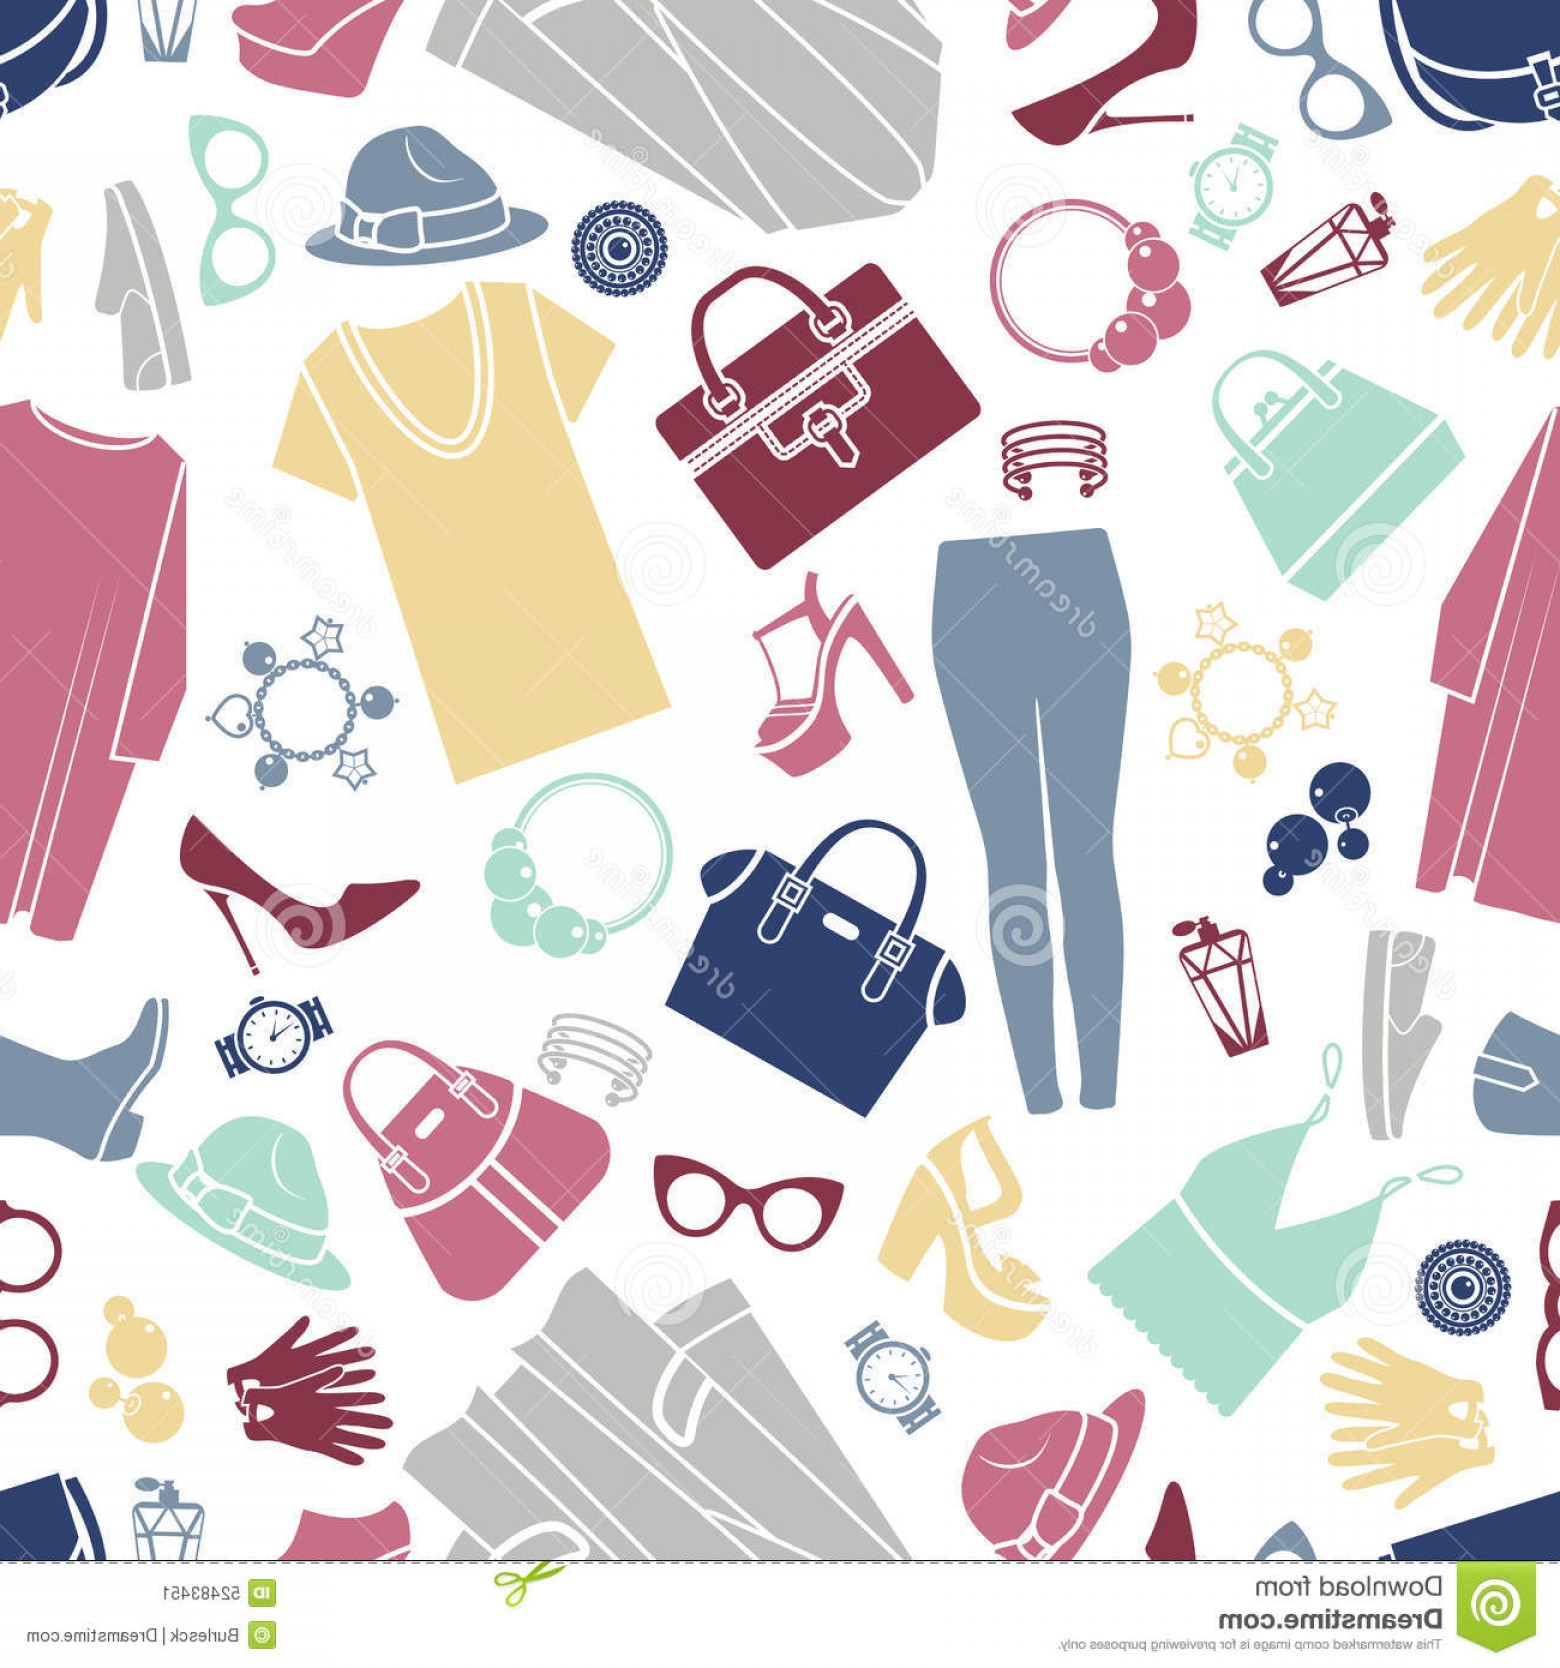 Vector Background Clip Art: Stock Illustration Fashion Shopping Icons Seamless Vector Background Pattern Design Illustration Silhouette Accessories Image